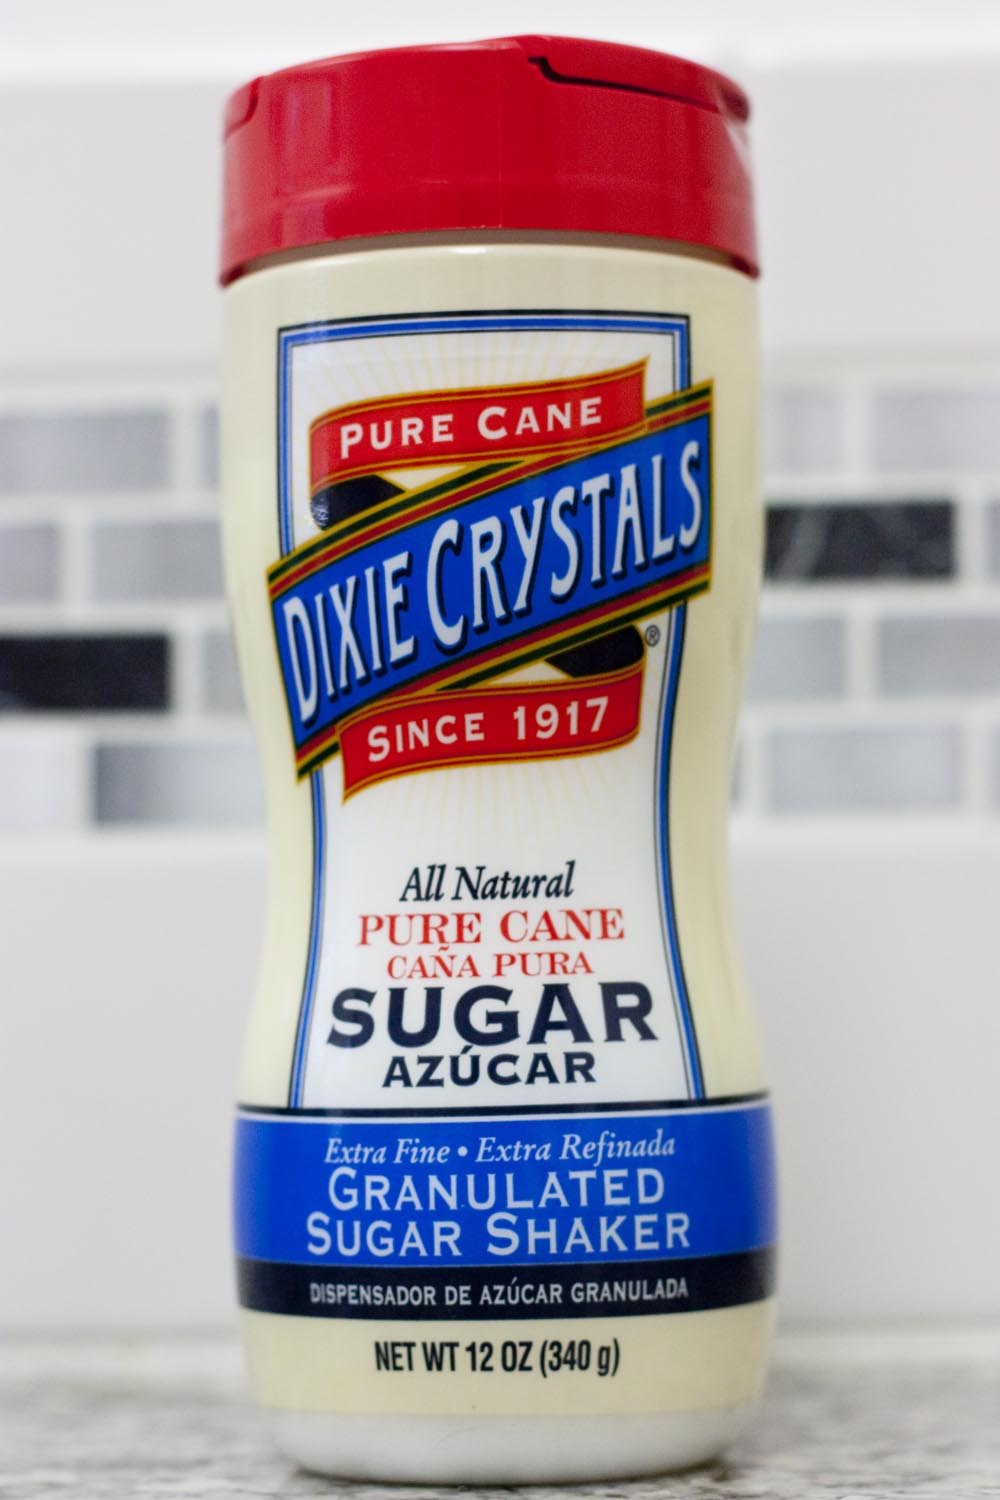 Common refined white crystallized sugar is a totally man-made chemical never found in nature and never part of our natural diet.